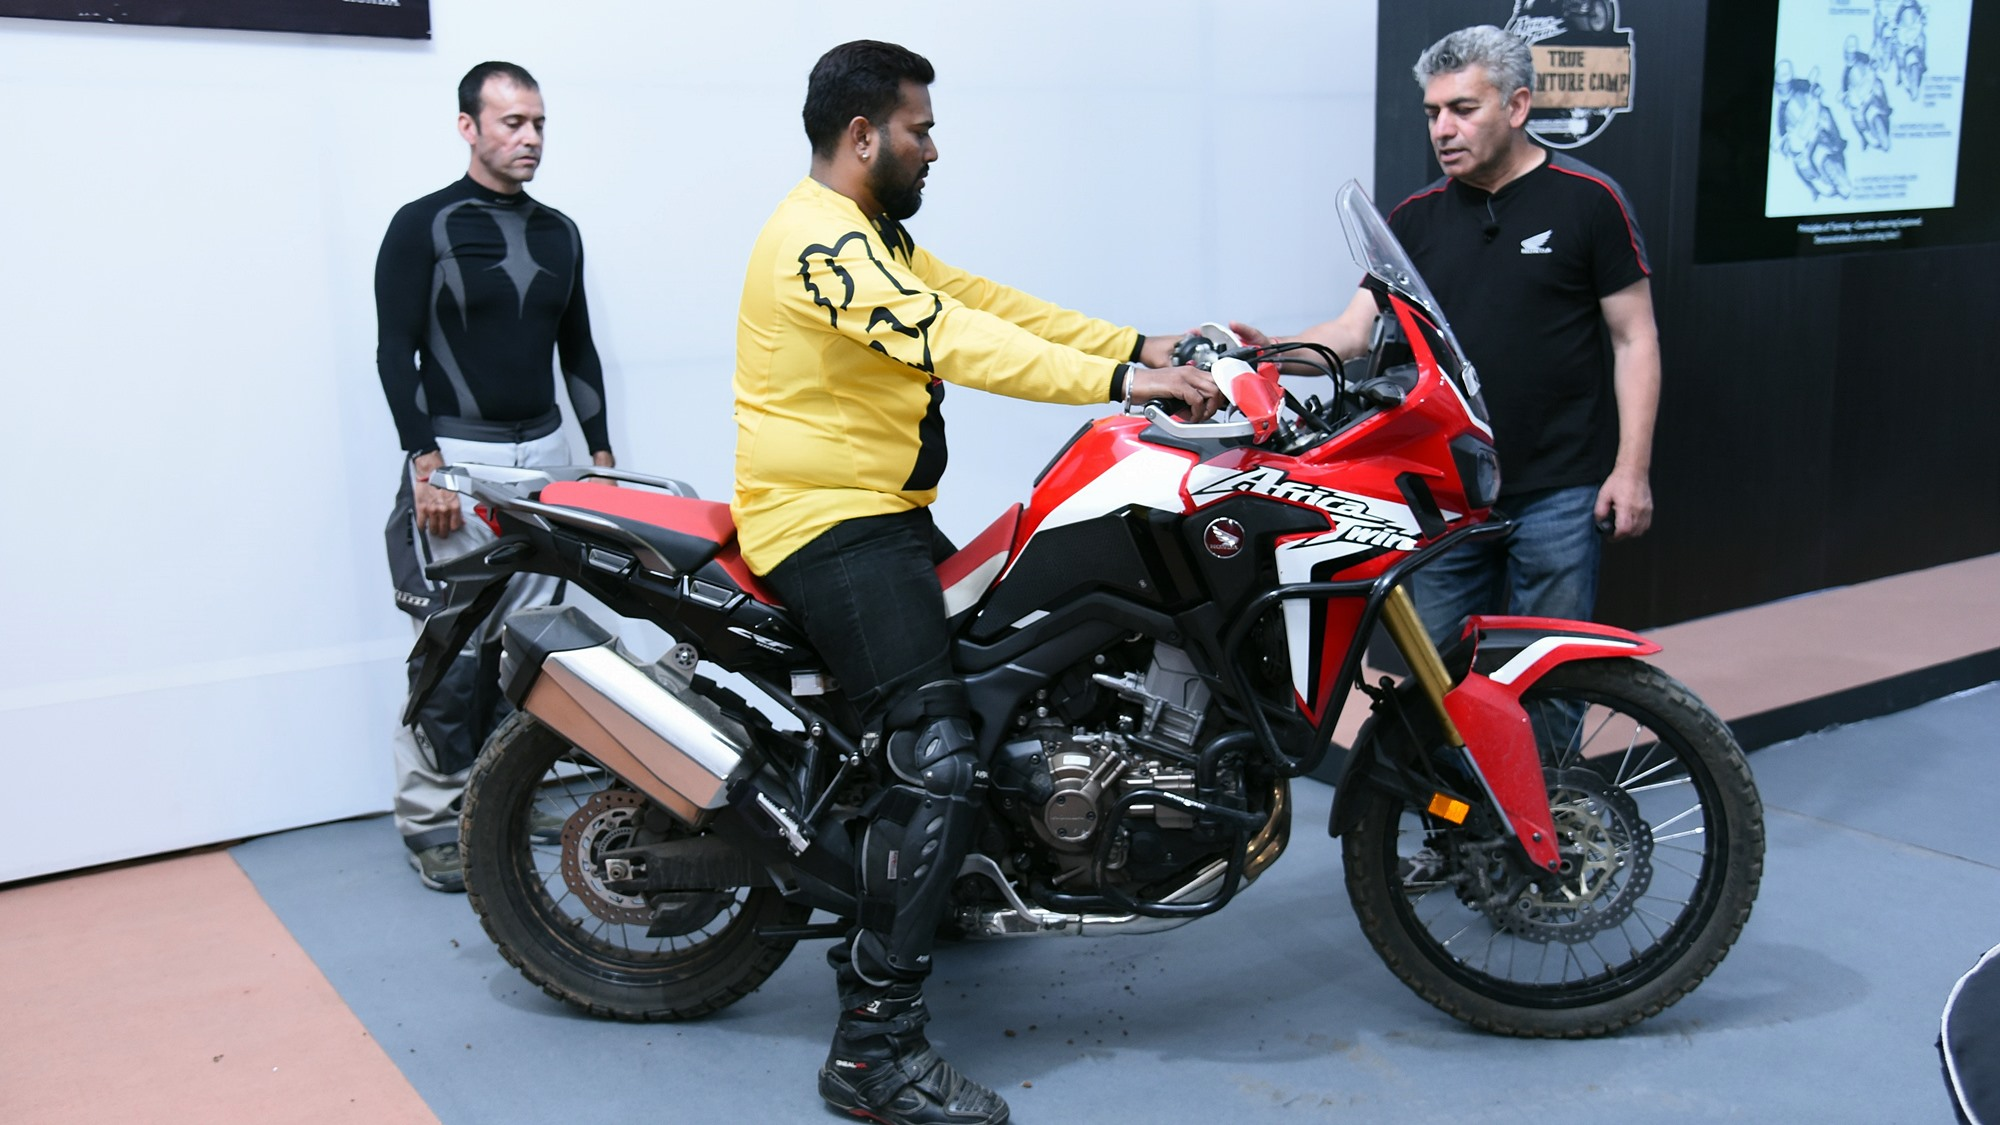 Honda Africa Twin True Adventure Camp reaches Bengaluru with Off-Riding Guru Vijay Parmar training the riders